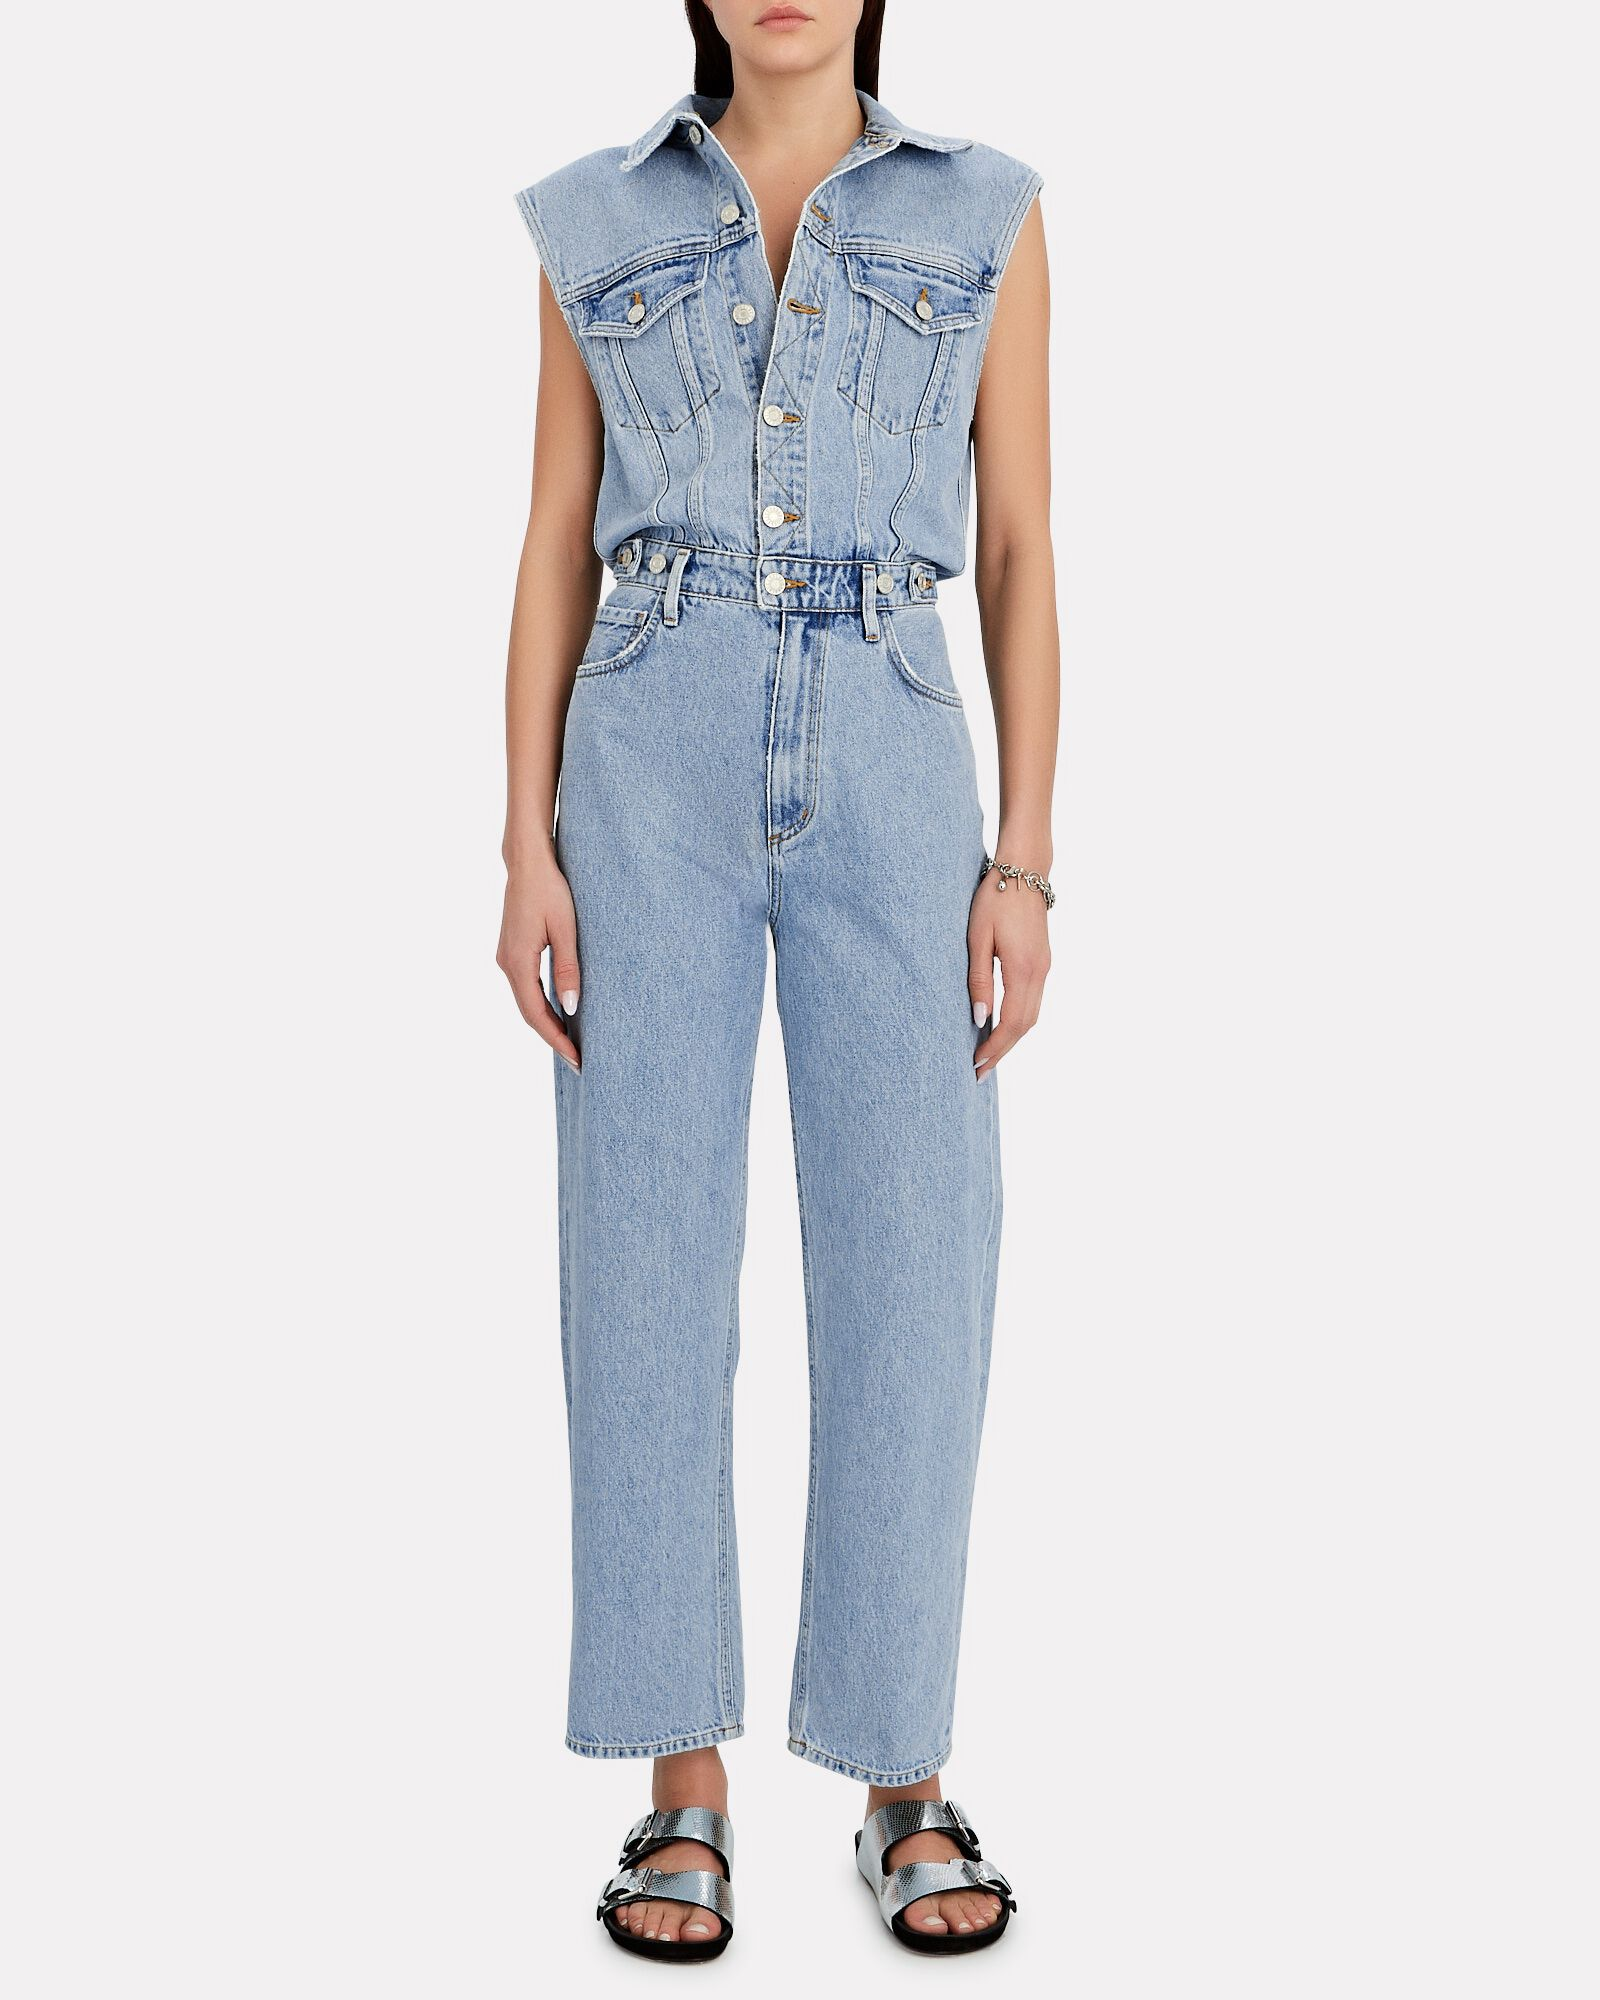 Blanca Sleeveless Denim Jumpsuit, DRIVE, hi-res